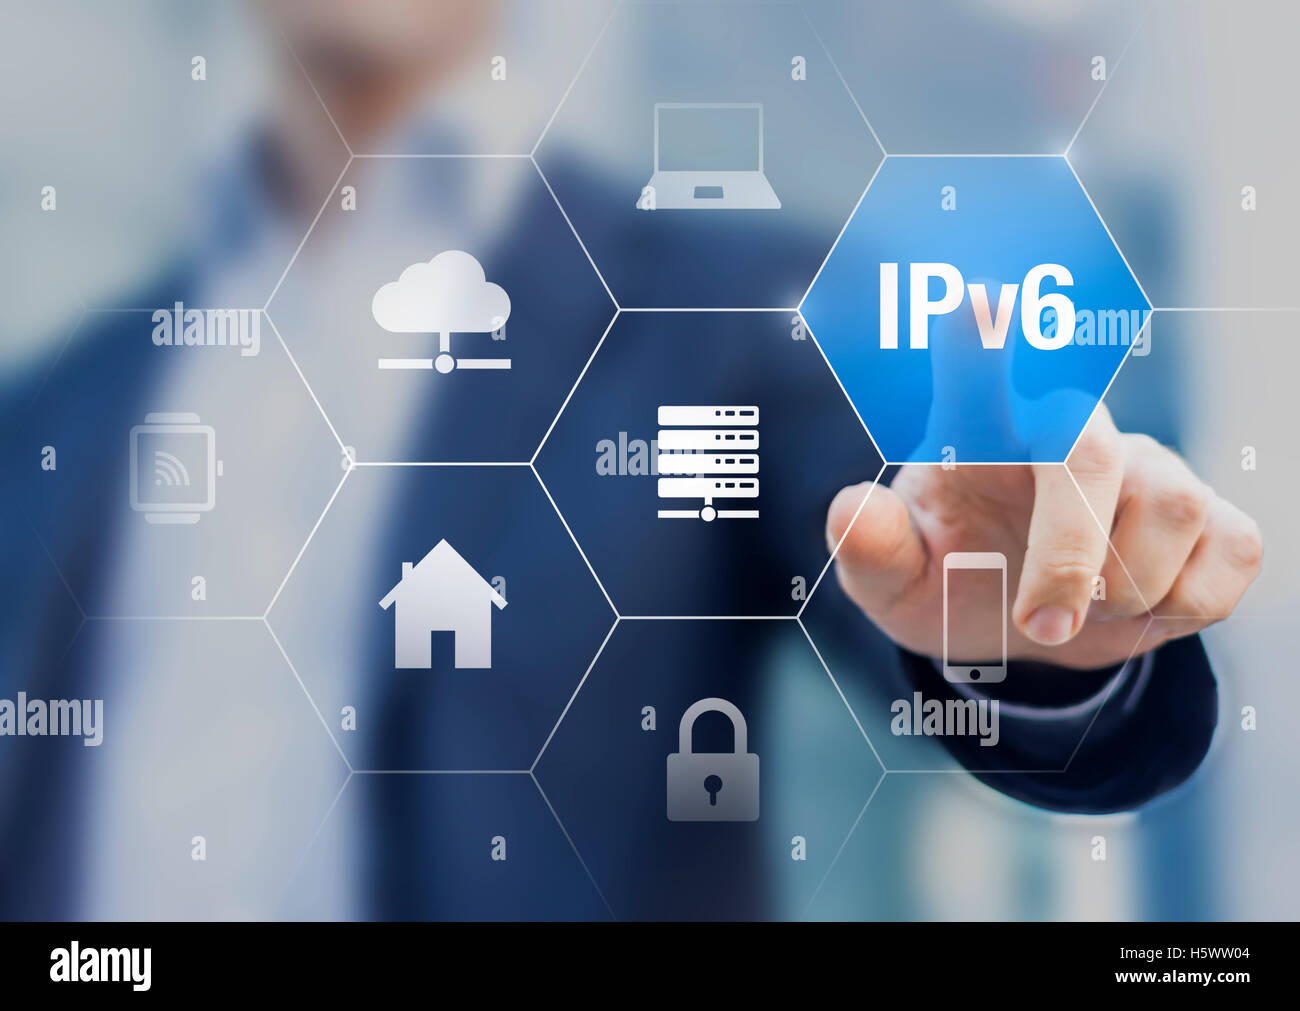 Presentation of IPv6 internet protocol to connect all smart objects of our homes and life, concept about iot - Stock Image